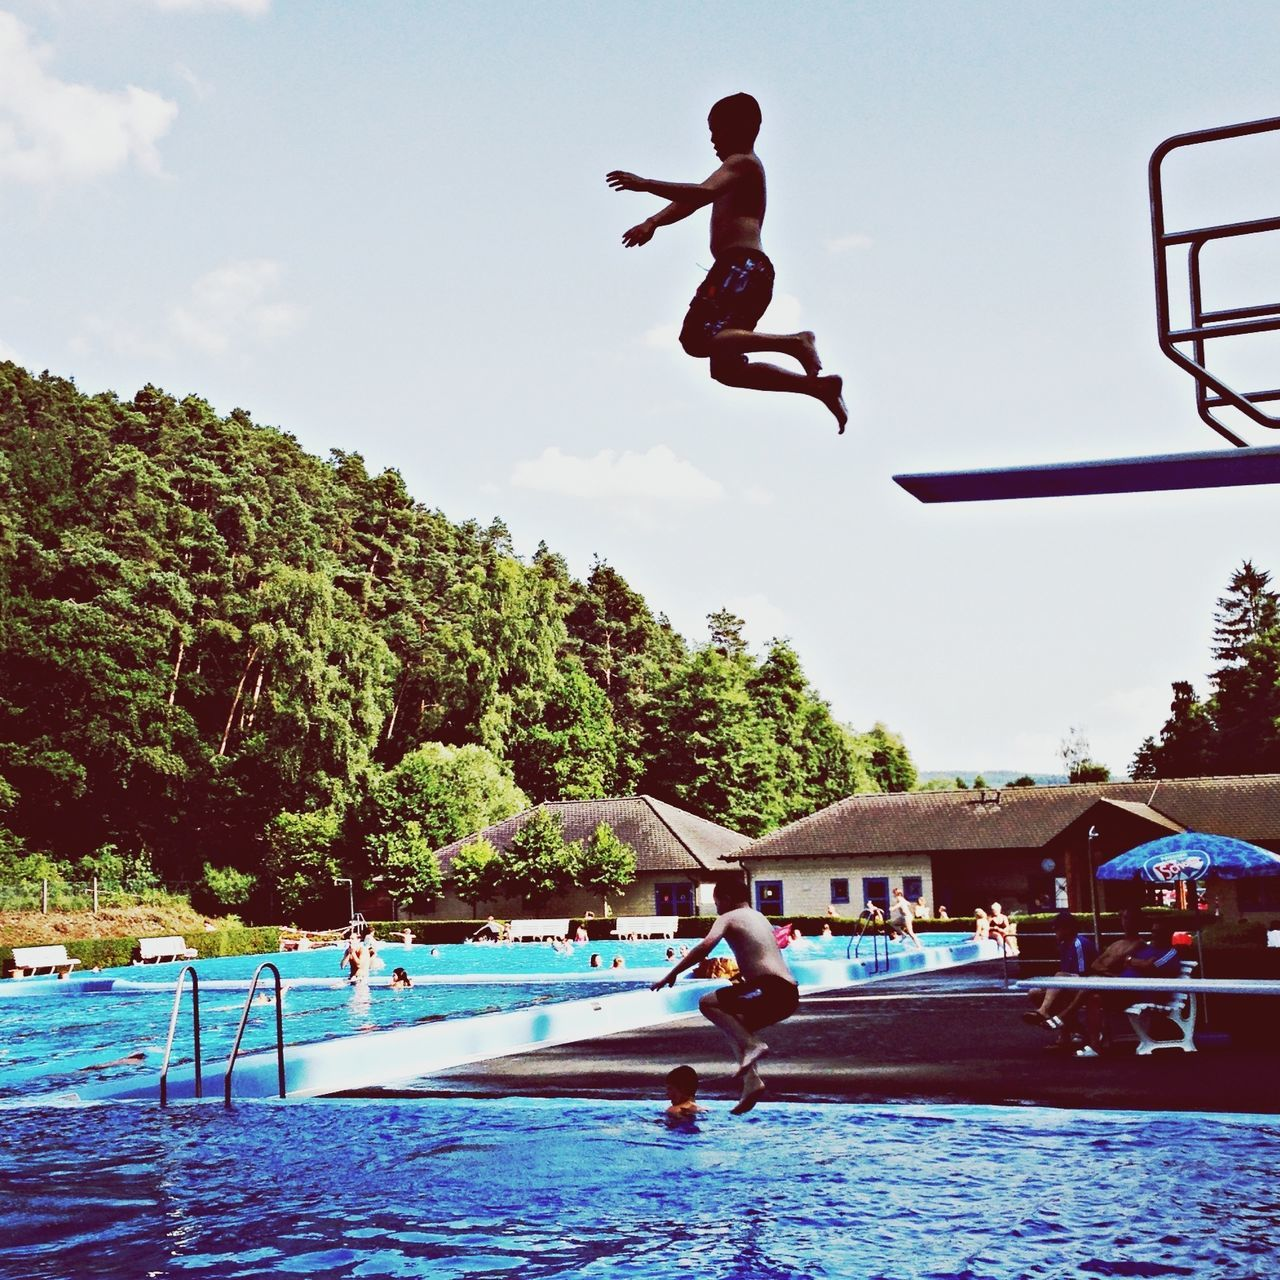 Man jumping into swimming pool against sky